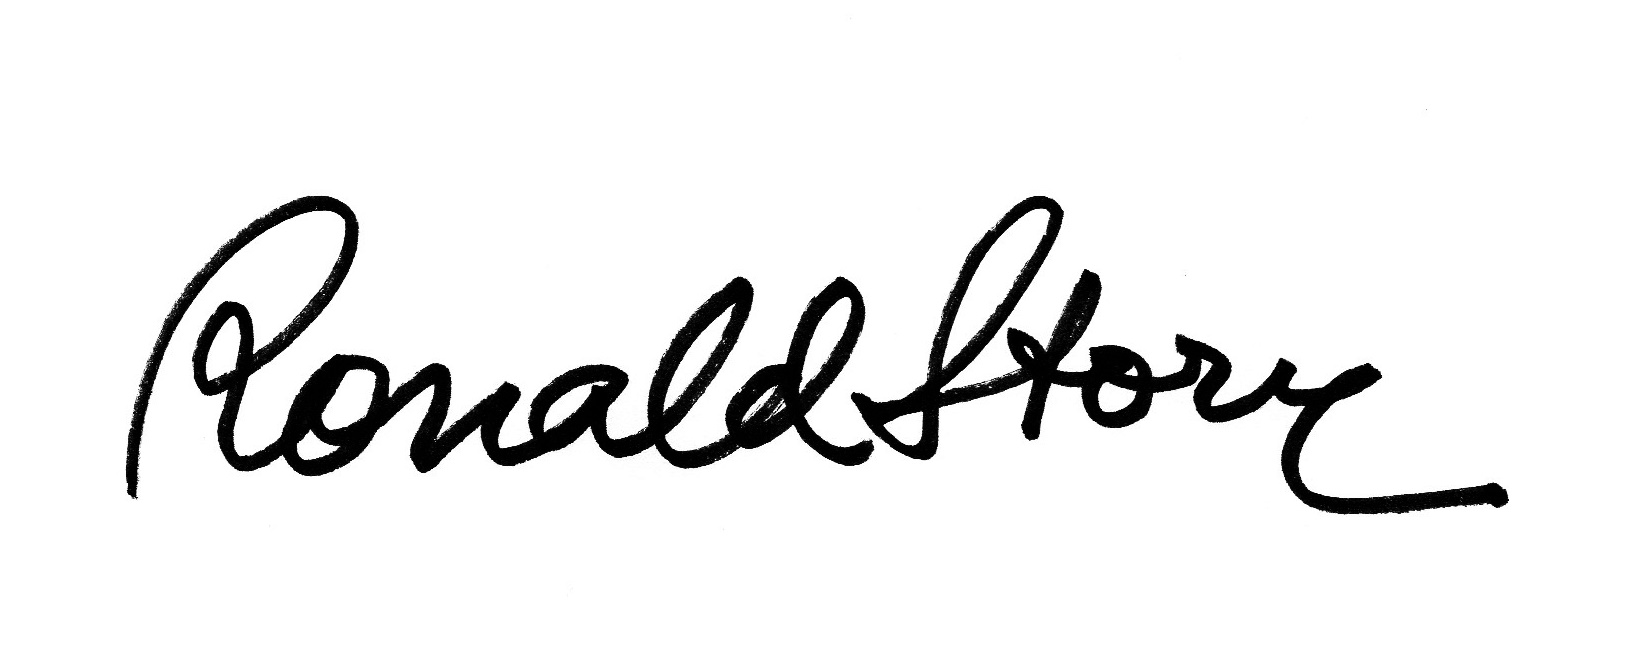 RONALD STORY's Signature